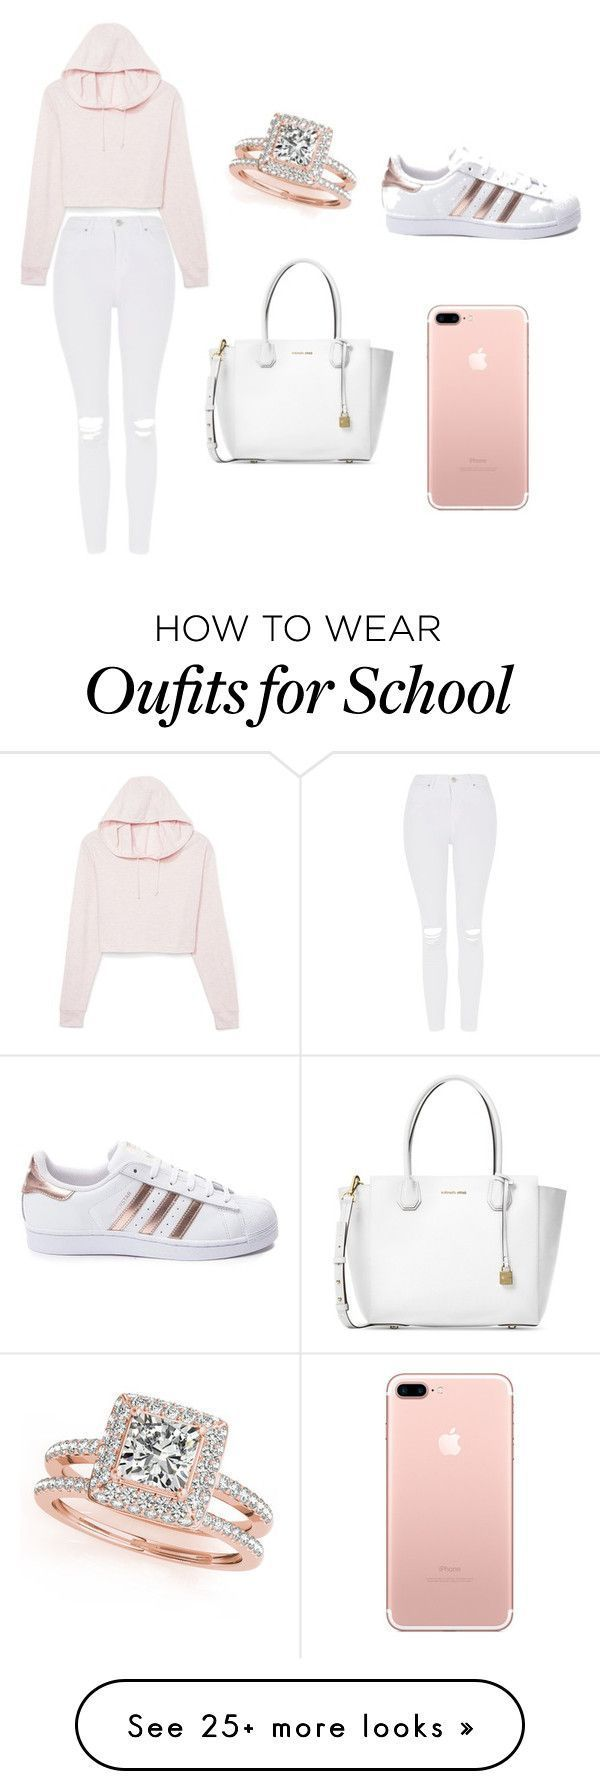 """""""school outfit"""" by ashlehhfhbffg on Polyvore featuring Michael Kors, Topshop, adidas and Allurez"""